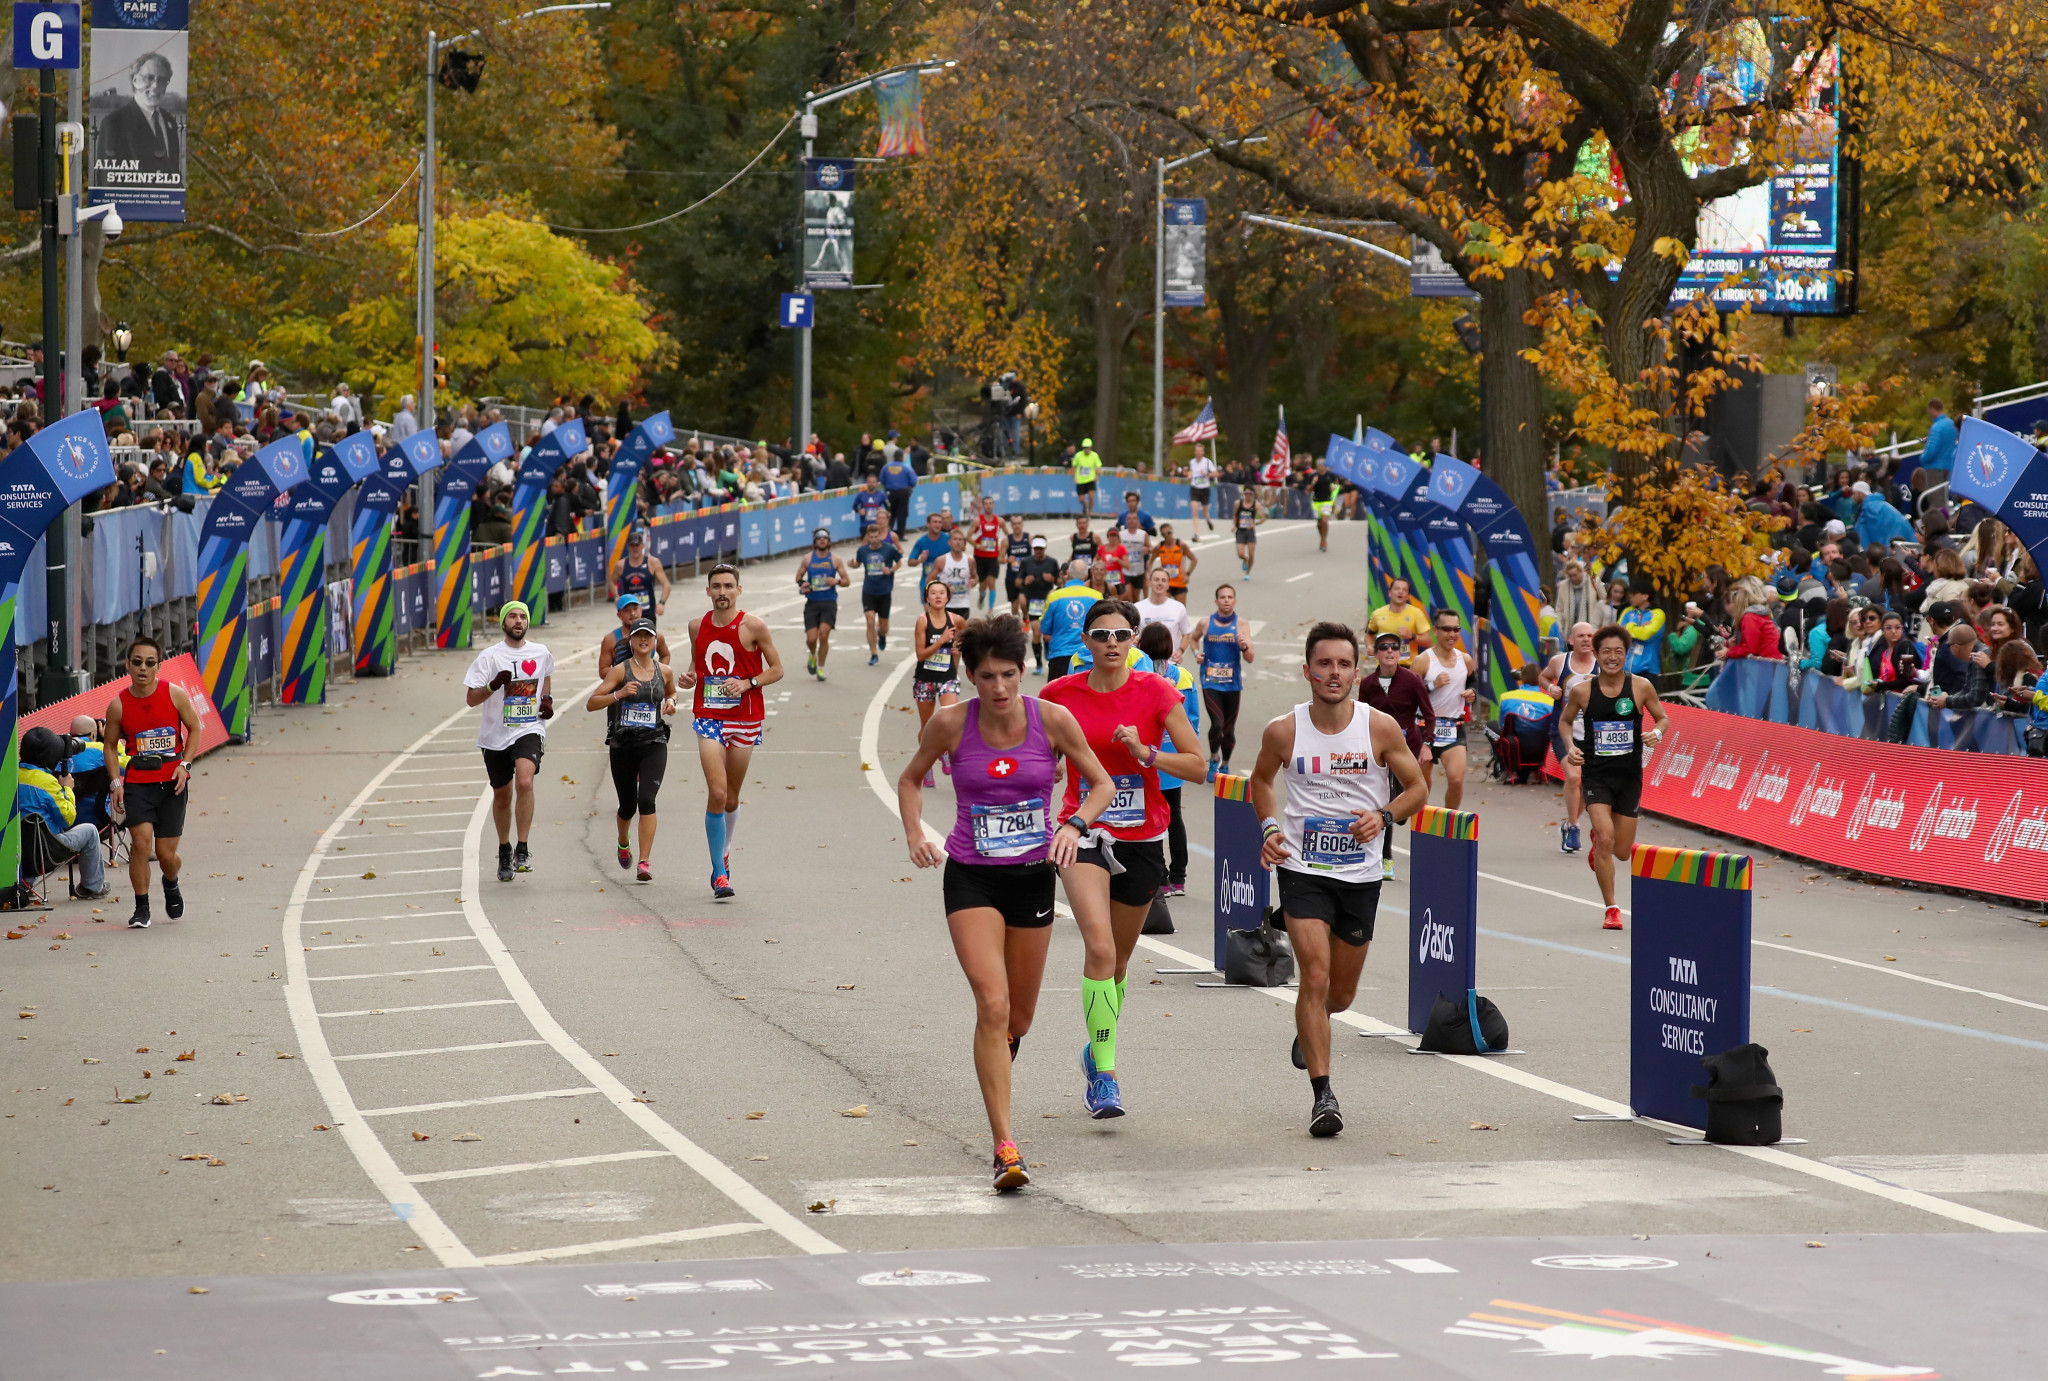 Police have said this weekend's New York City Marathon will take place amid heightened security ©Getty Images